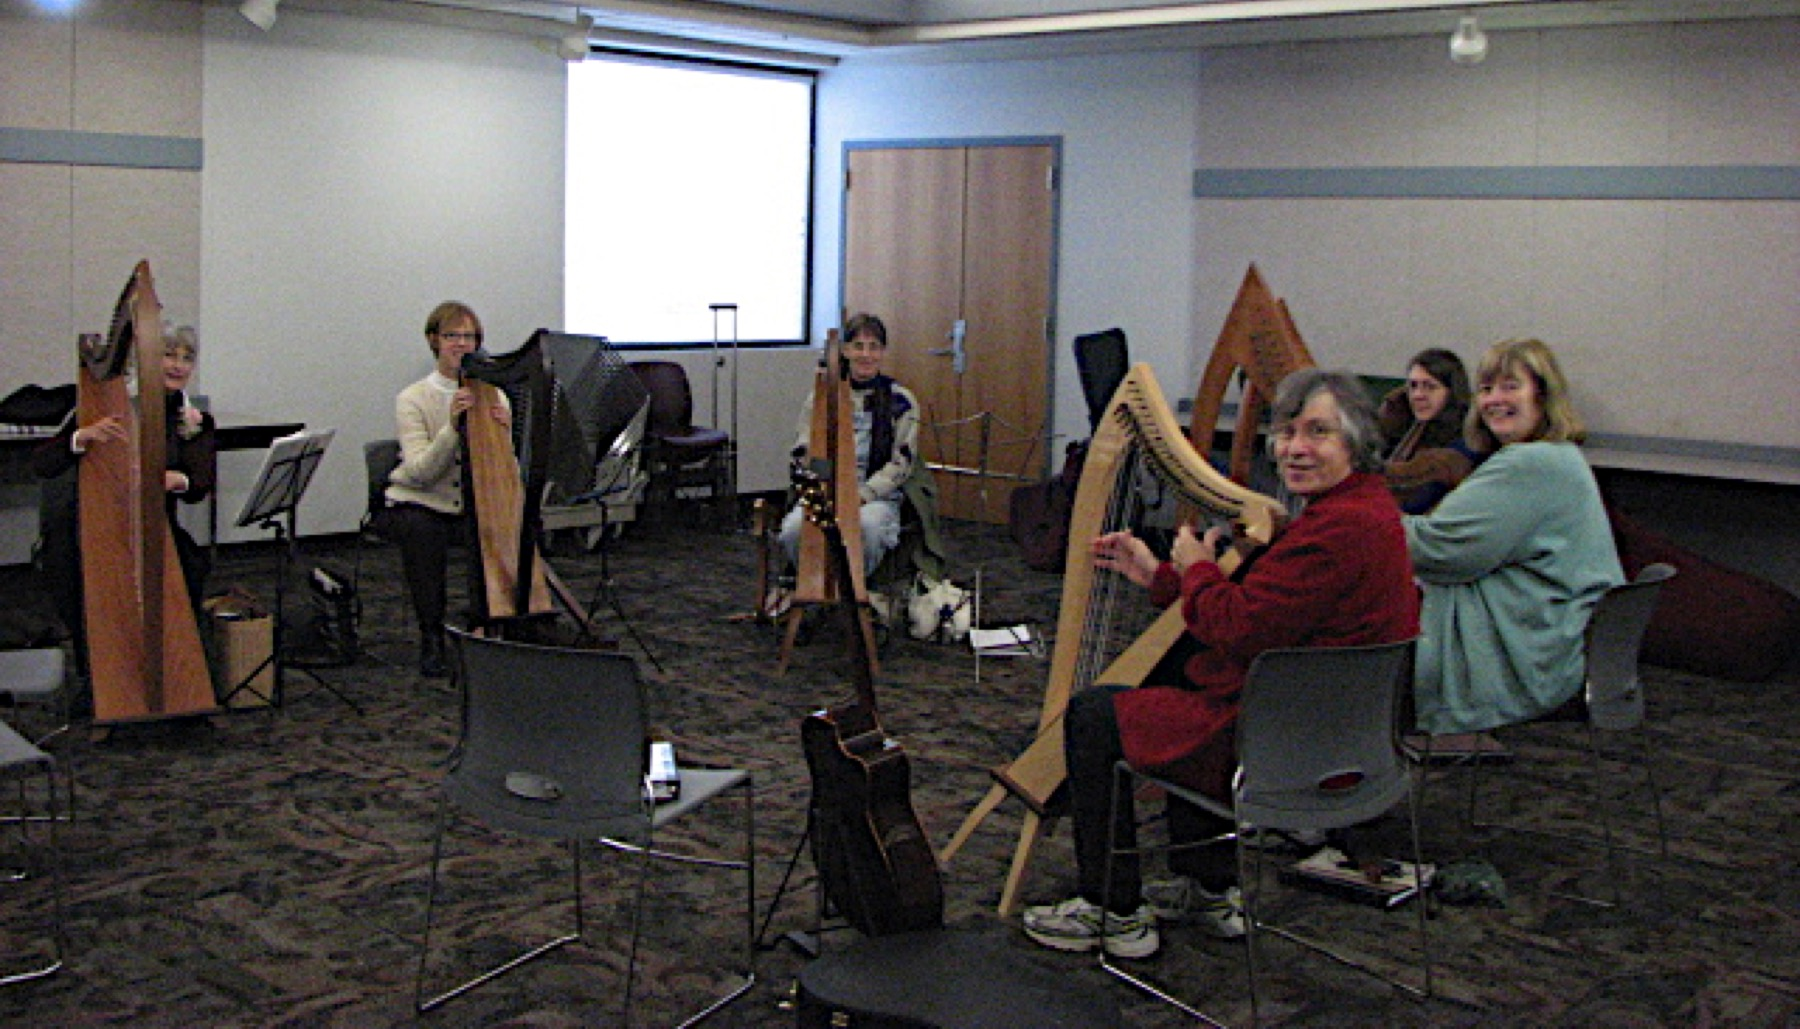 Harp Circle from the Past